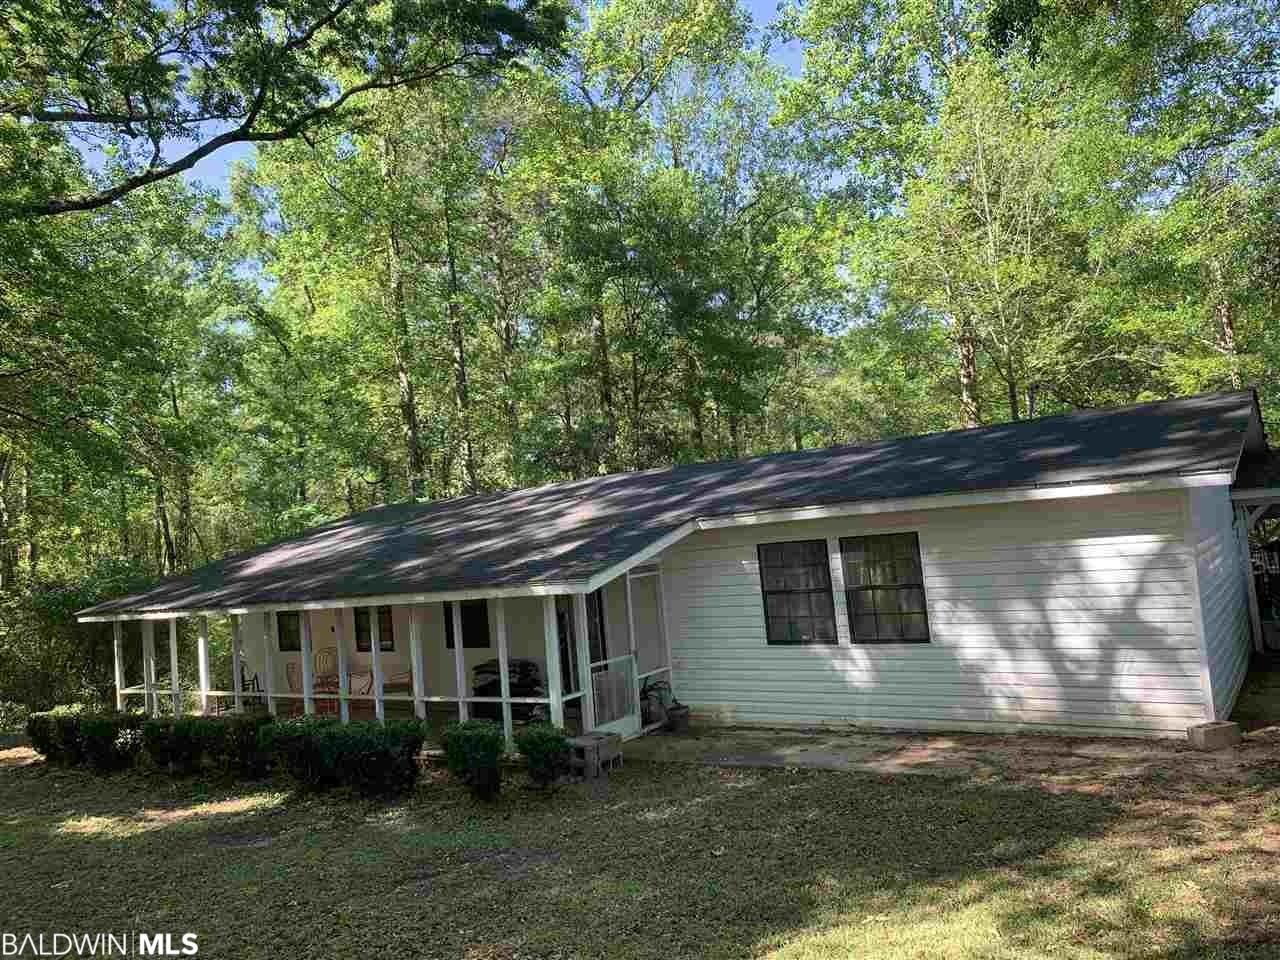 Lovely home in a quiet setting on 7 acres! If you're looking for tranquility and a home to put your own touches on, this home is for you! Roof has been replaced on the home within the last 2 yrs except over the car port. Home is being SOLD AS IS. Possible short sale